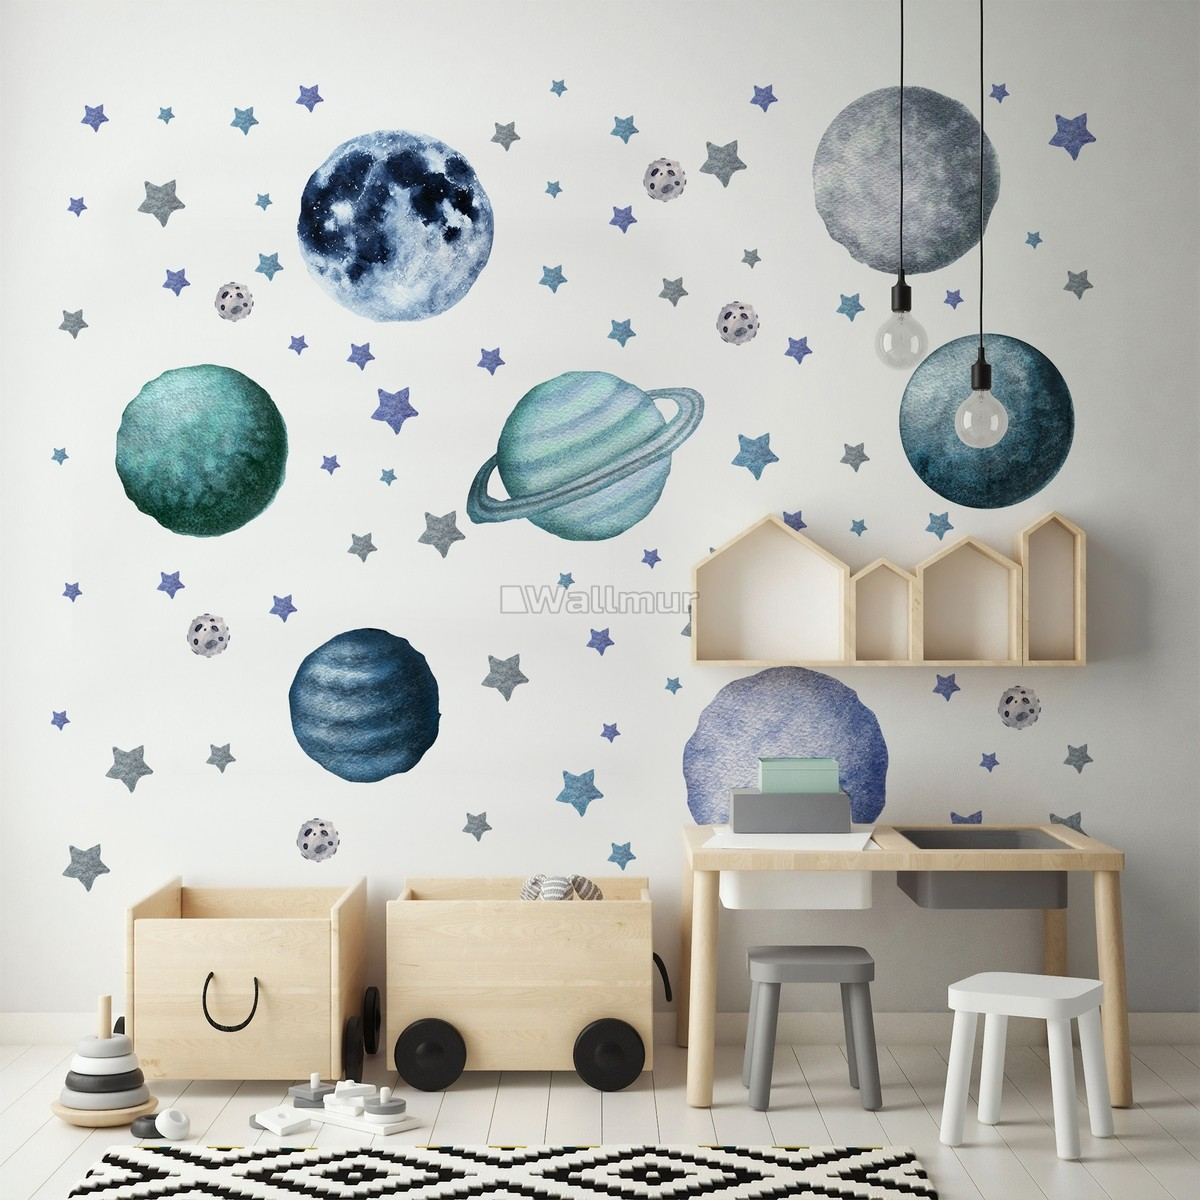 Watercolor Planets and Stars Wall Decal Sticker